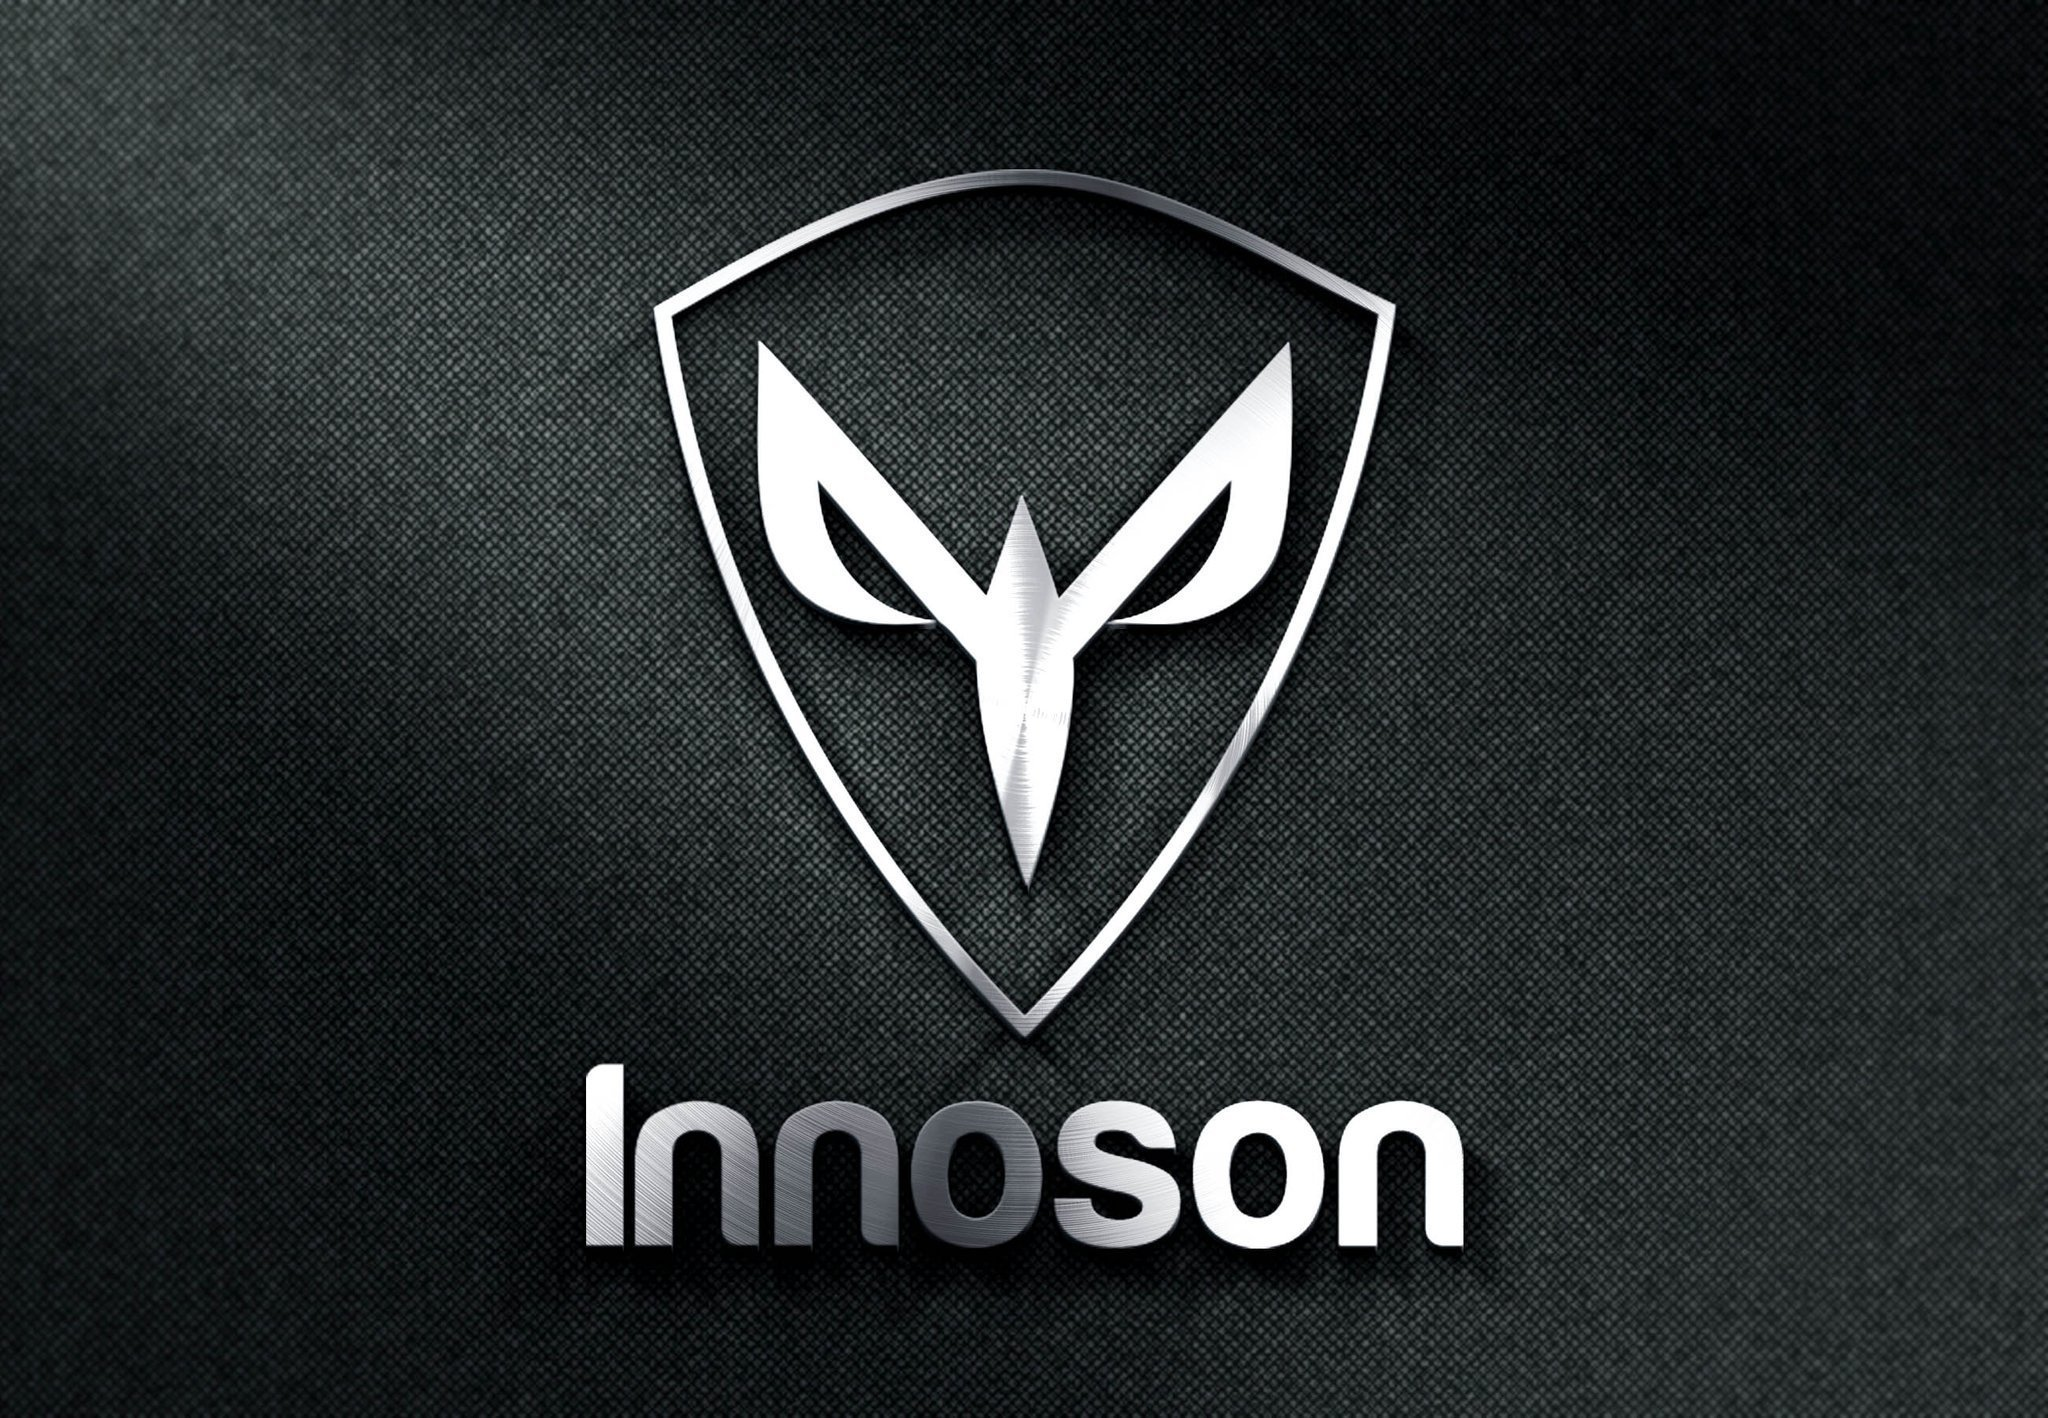 Undergraduate Who Redesigned Innoson Motors Logo Says He Is Happy And Overwhelmed The Guardian Nigeria News Nigeria And World Newsnigeria The Guardian Nigeria News Nigeria And World News Just enter your name and industry and our logo maker tool will give you hundreds of logo templates to choose from professionally made to fit your business. undergraduate who redesigned innoson